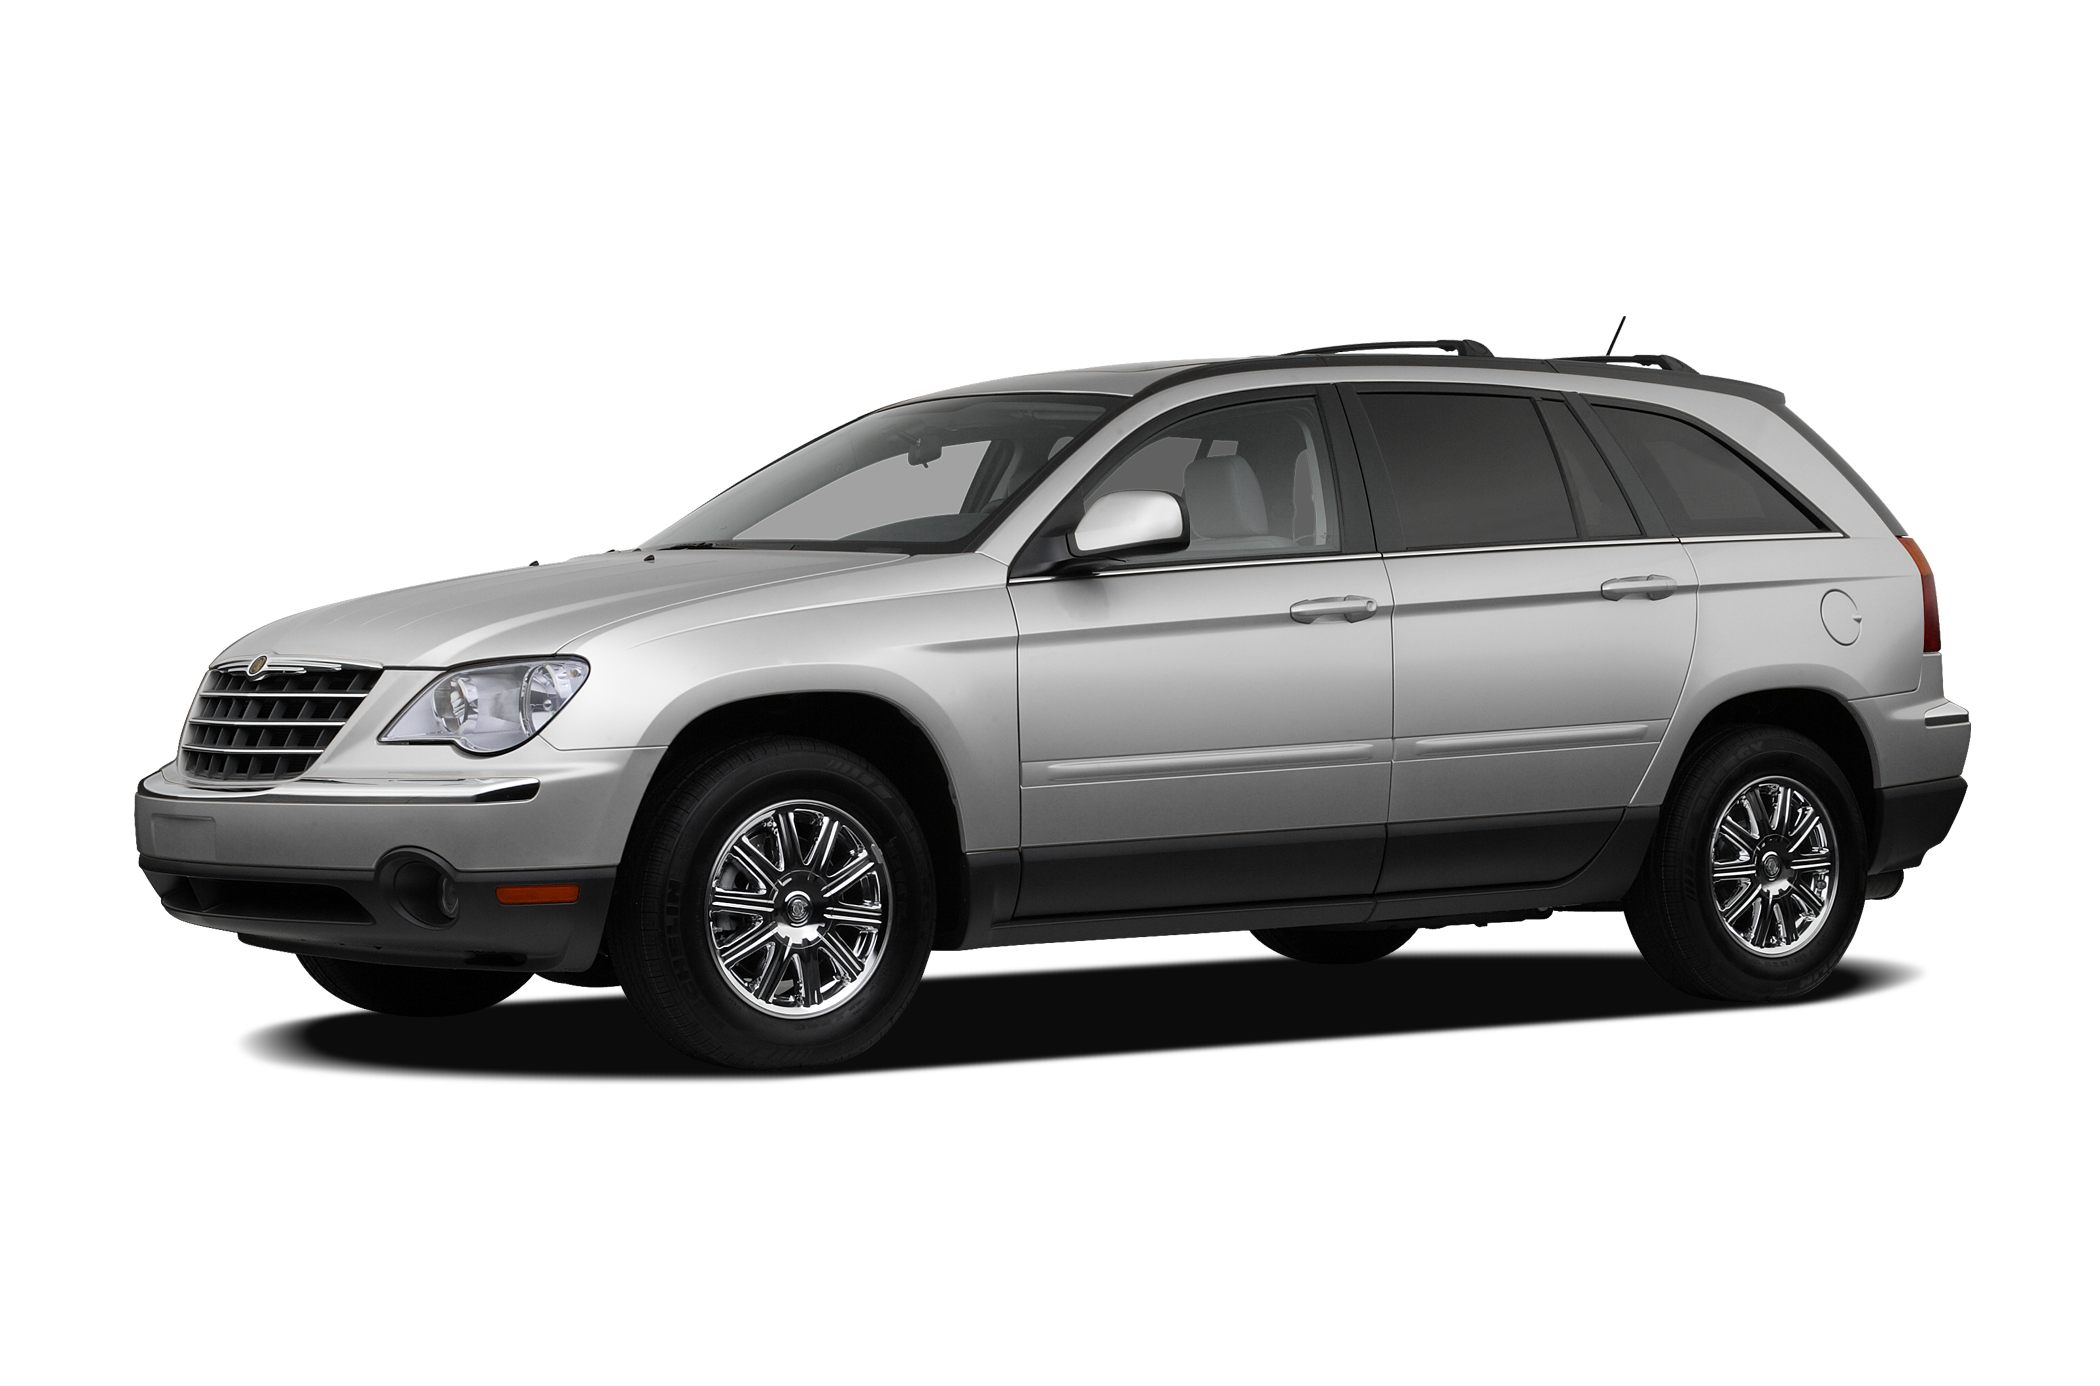 2007 Chrysler Pacifica Pricing And Specs